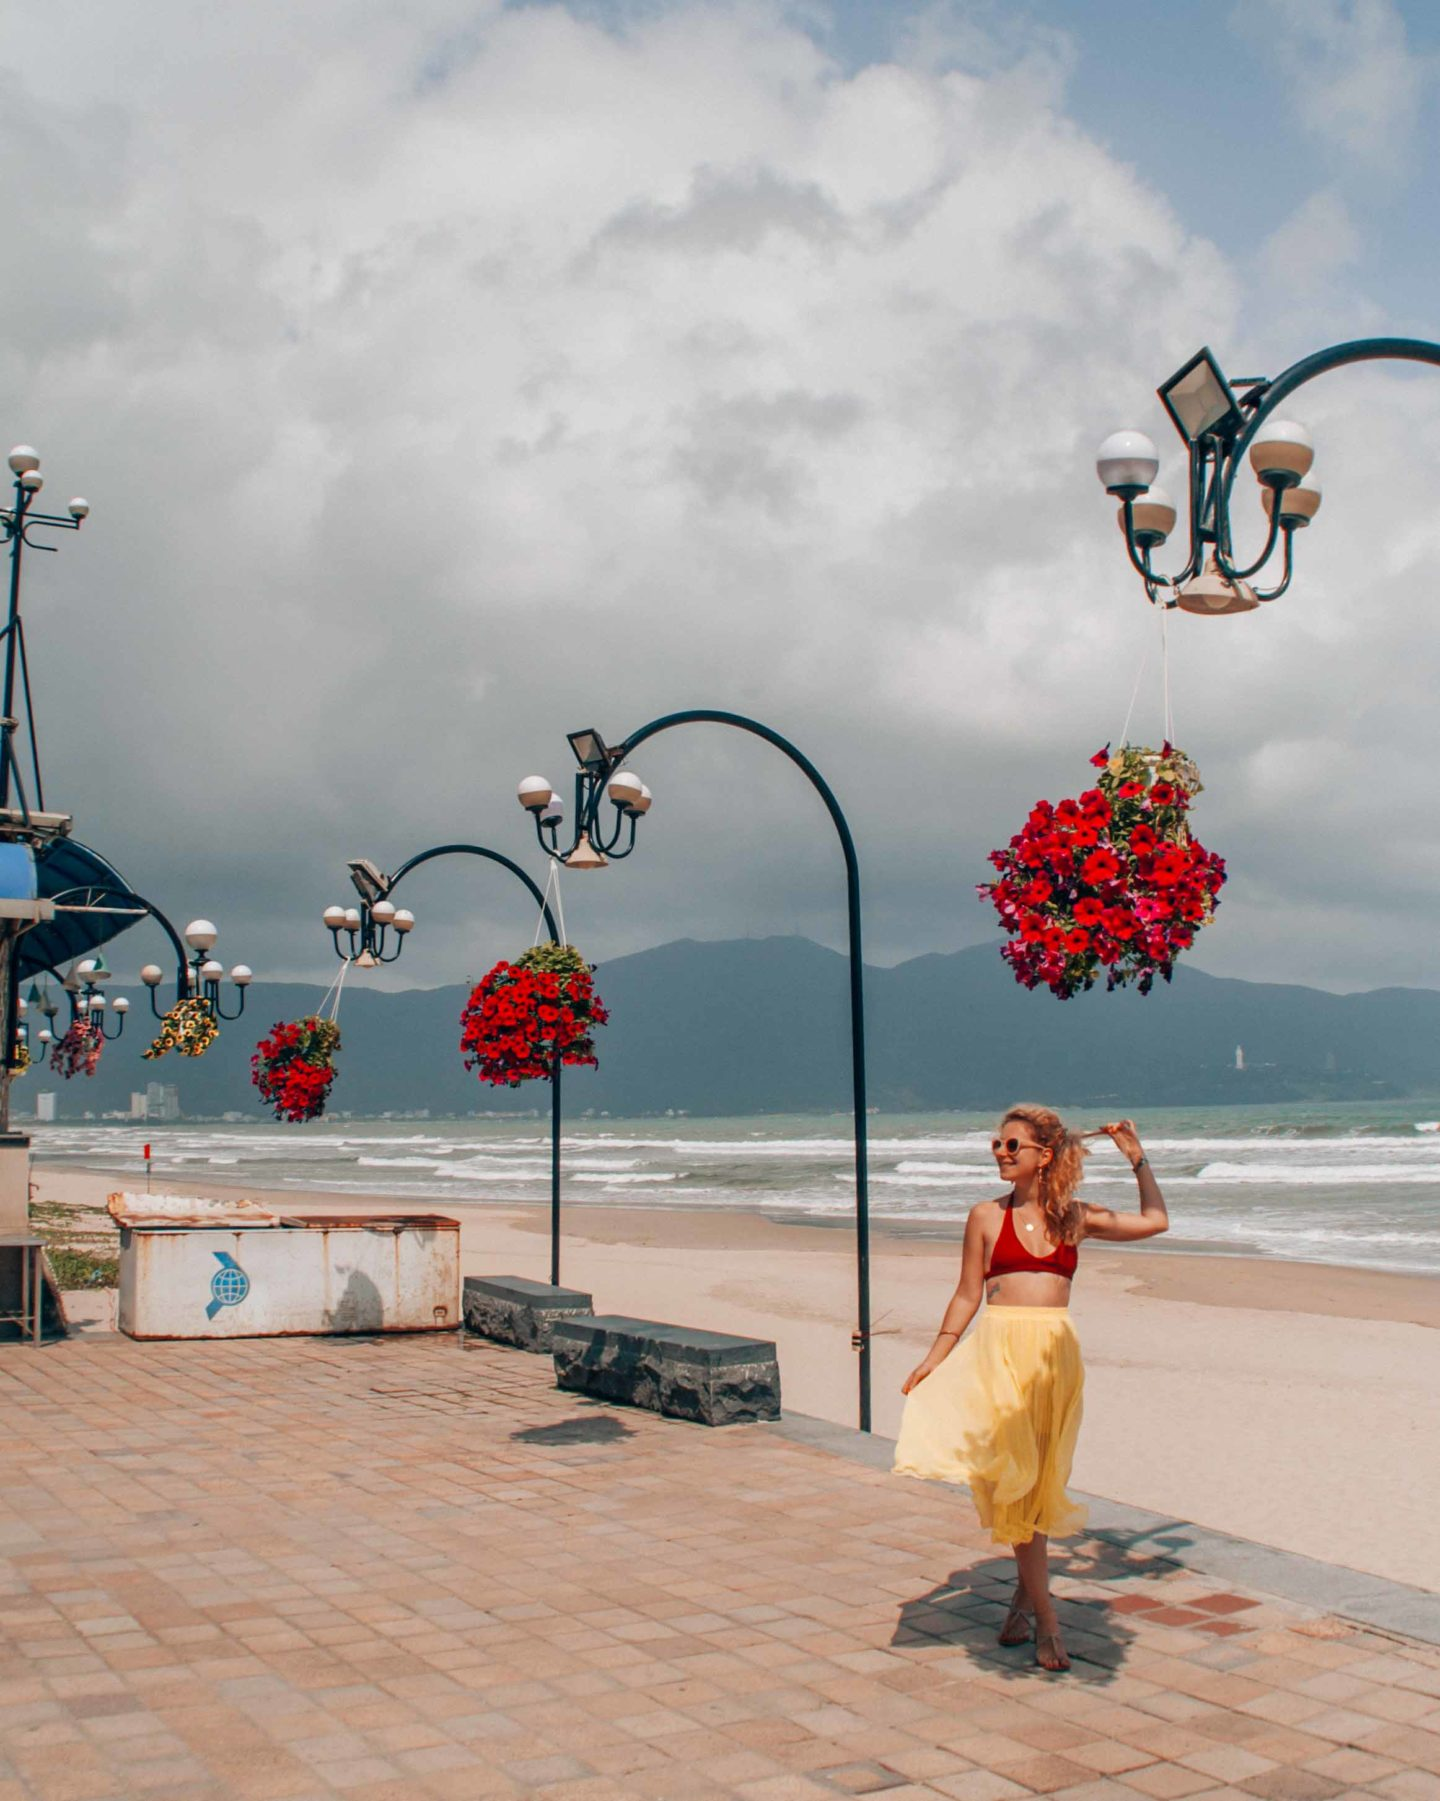 Seaside views and flowers on My Khe Beach, in Da Nang, Vietnam